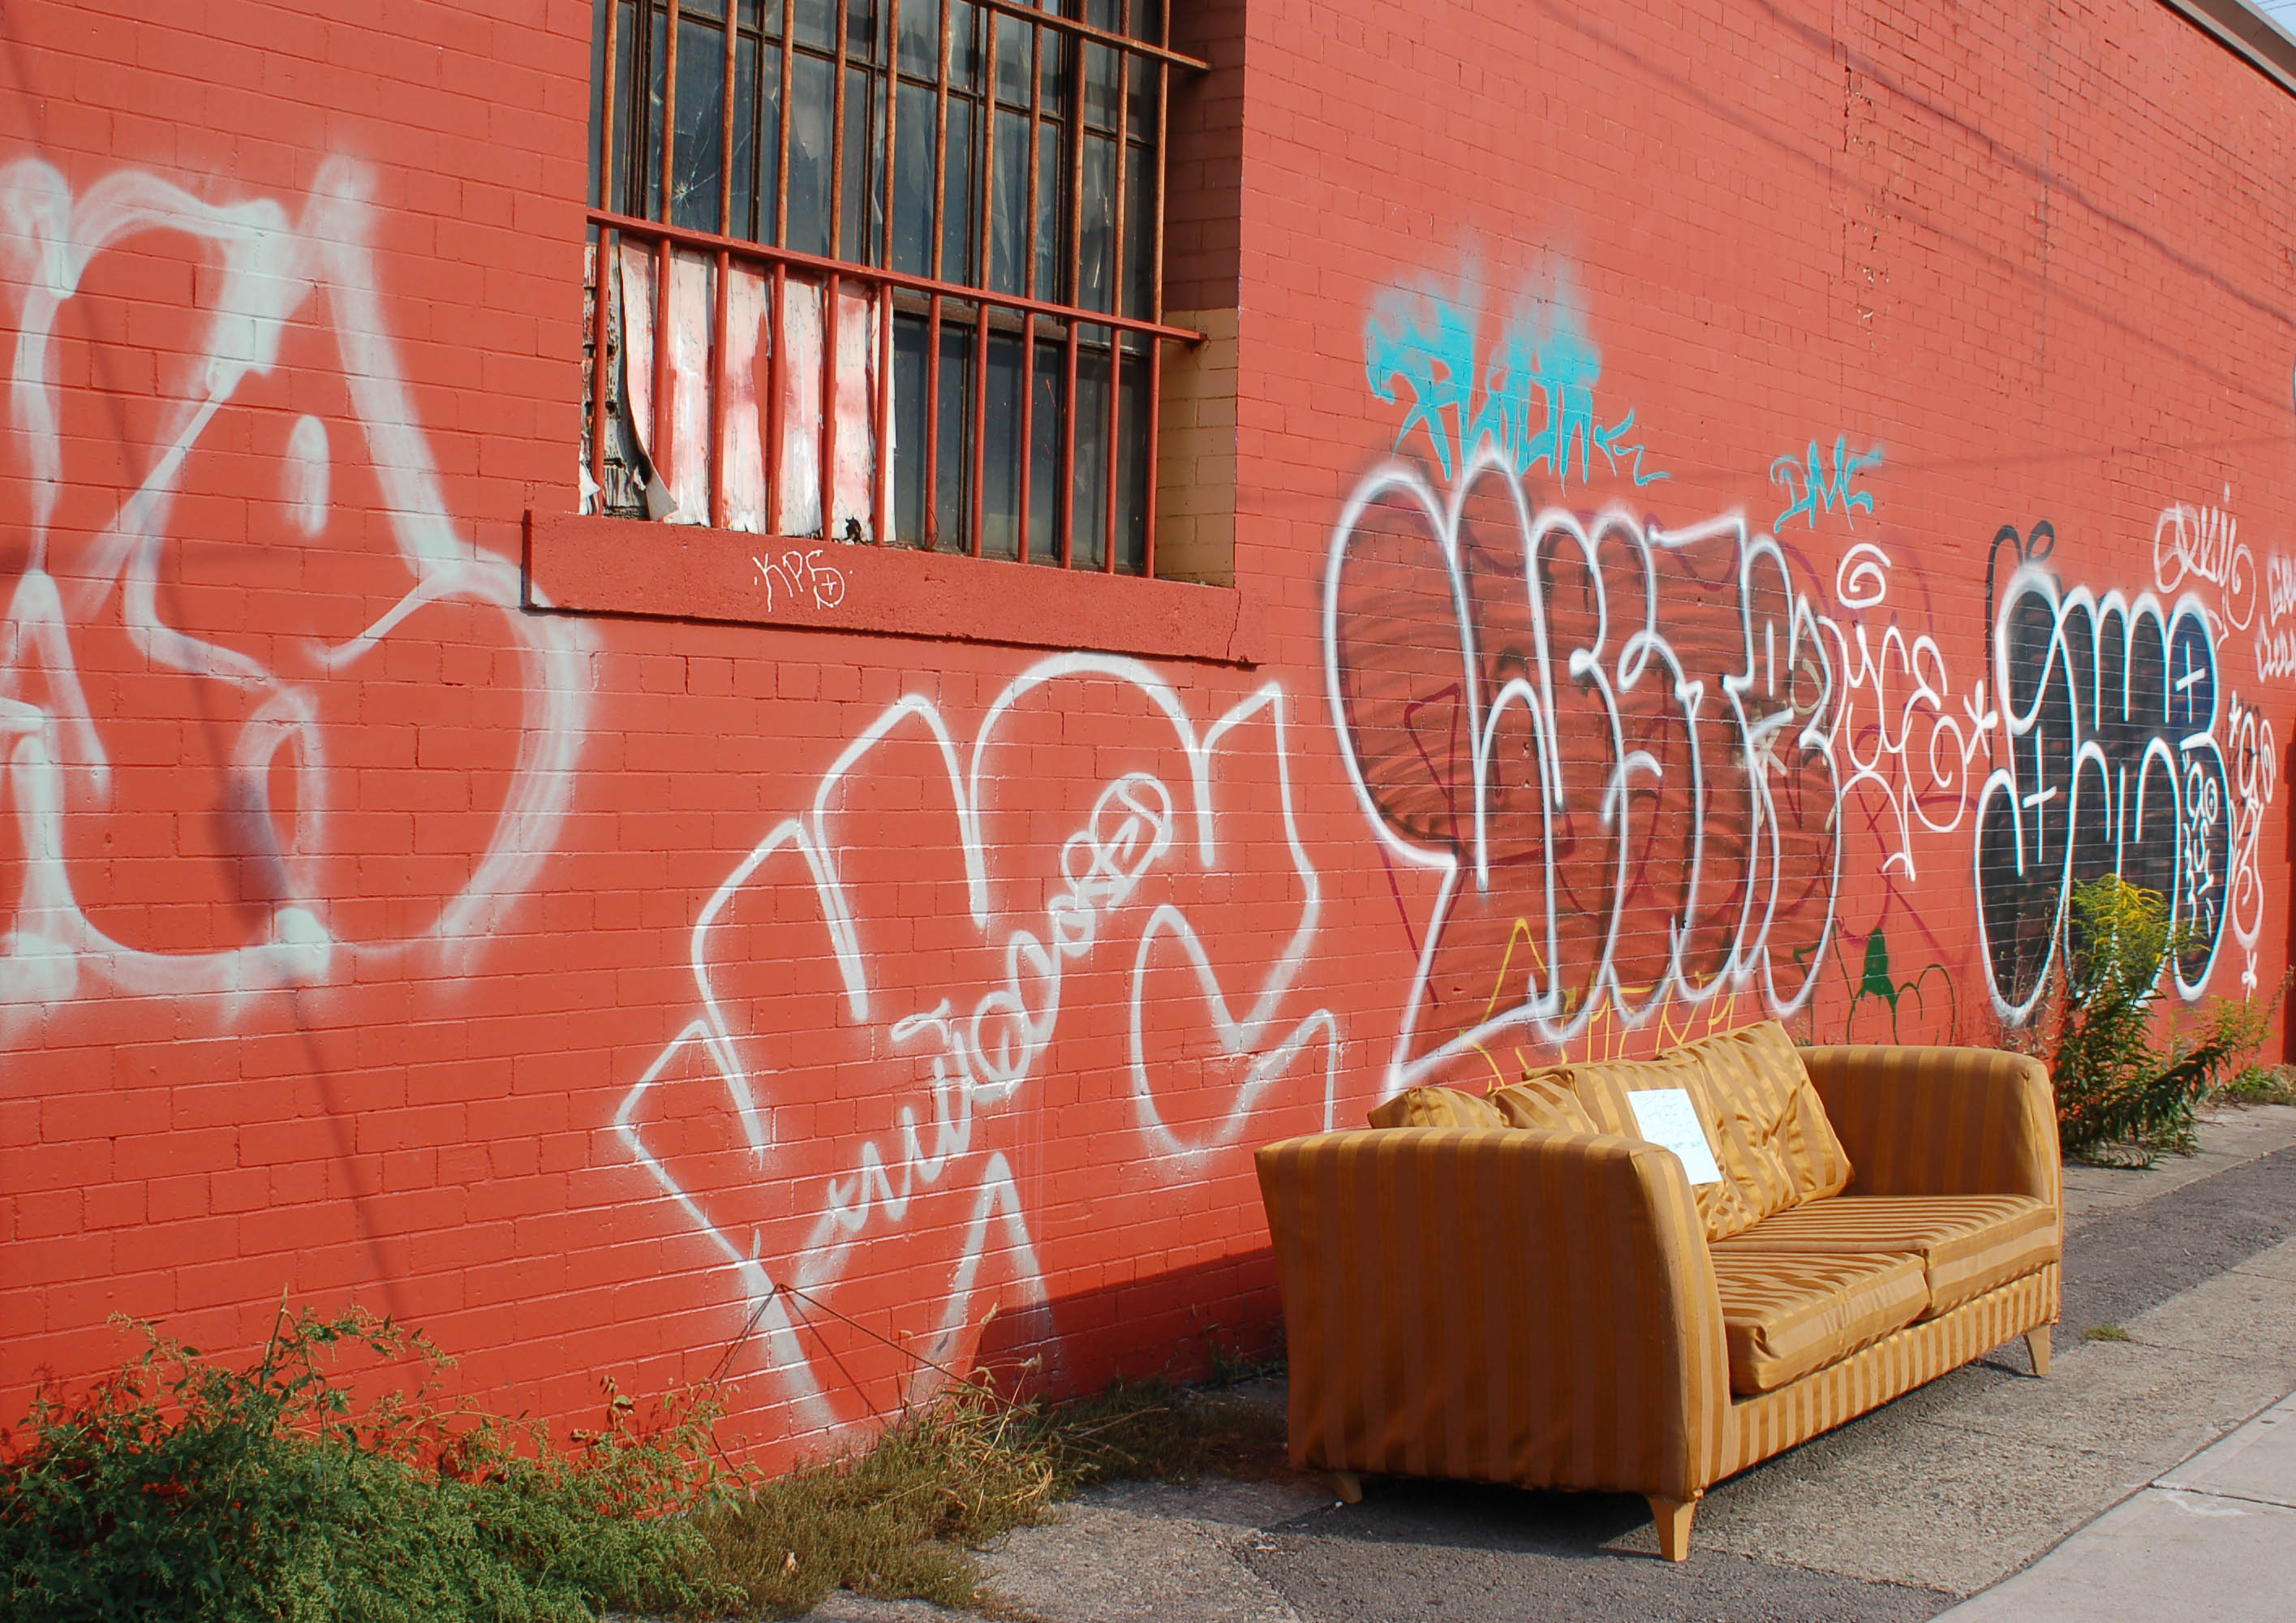 Image Of Couch Wonu0027t Fit Into Apartment